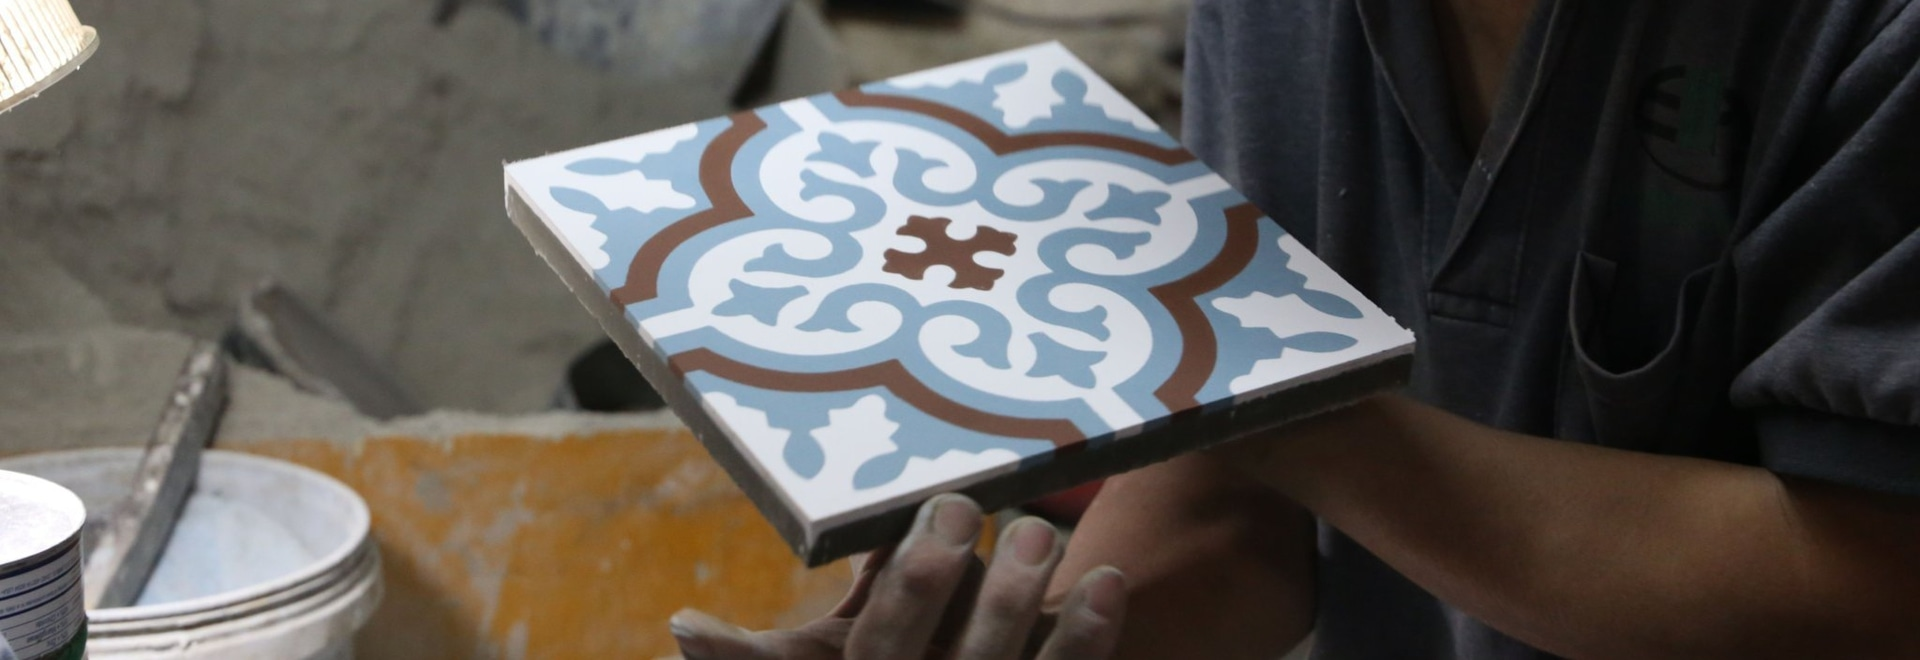 Handmade Cement Tile